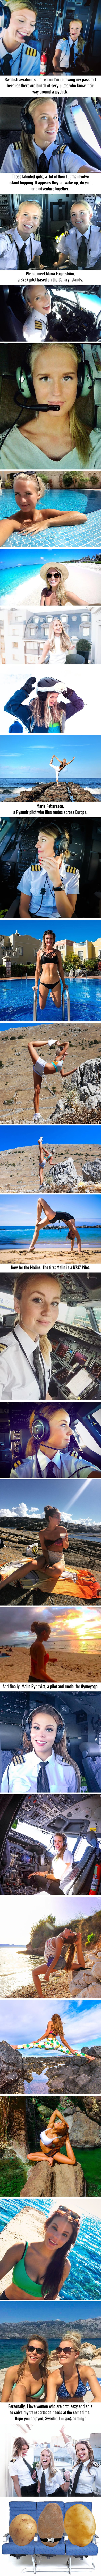 These Swedish pilots are the reasons to renew passport.